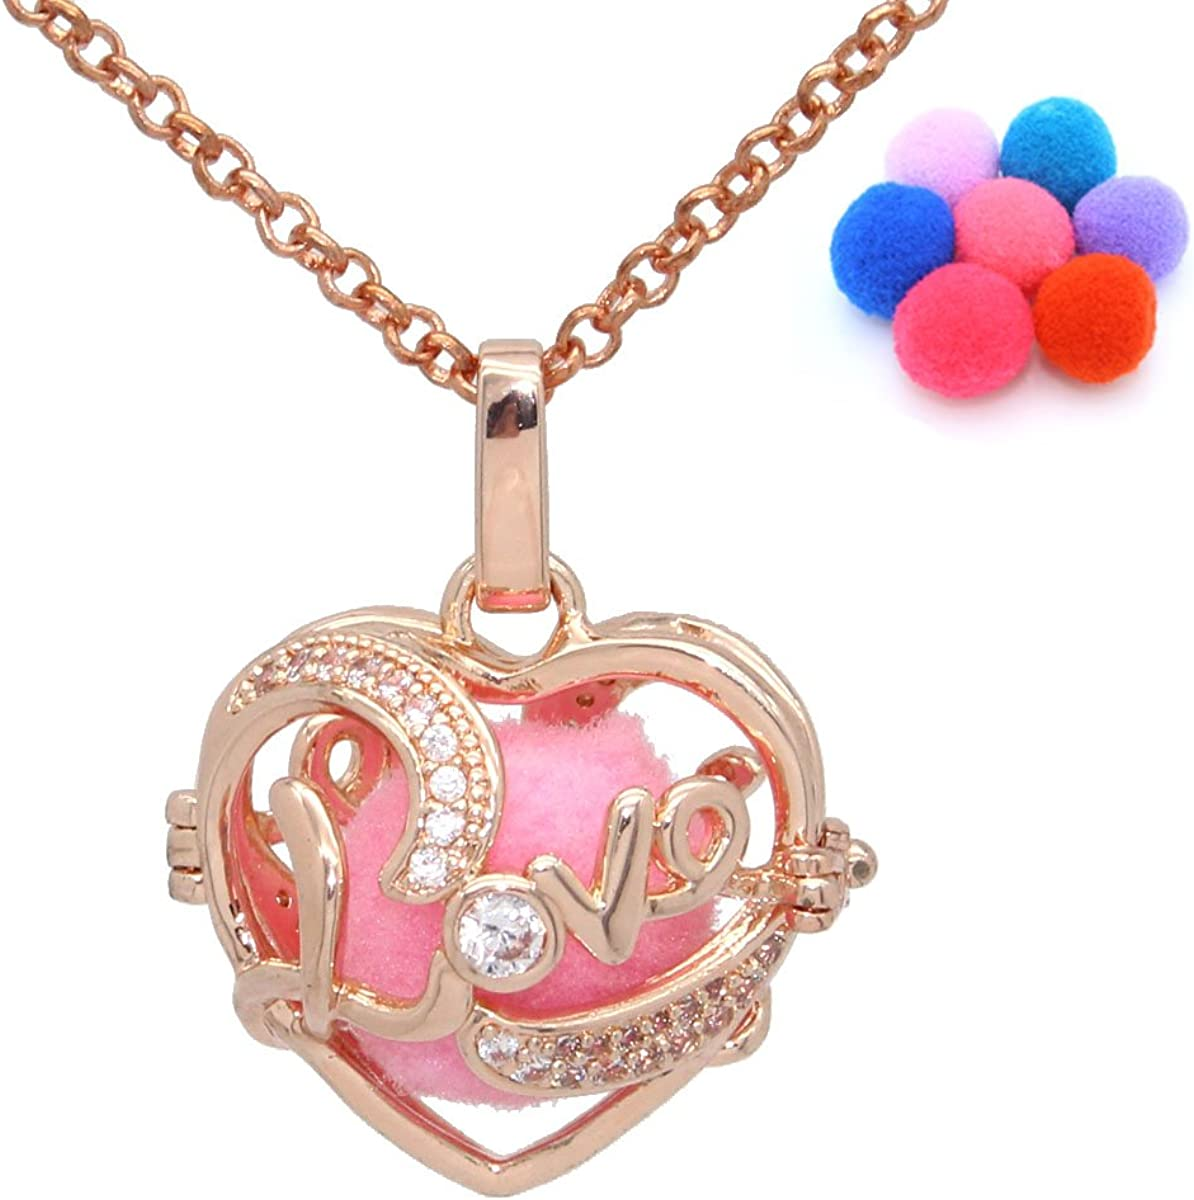 Aromatherapy Love Heart Shaped Pendant Essential Oil Diffuser Locket Necklace + 30